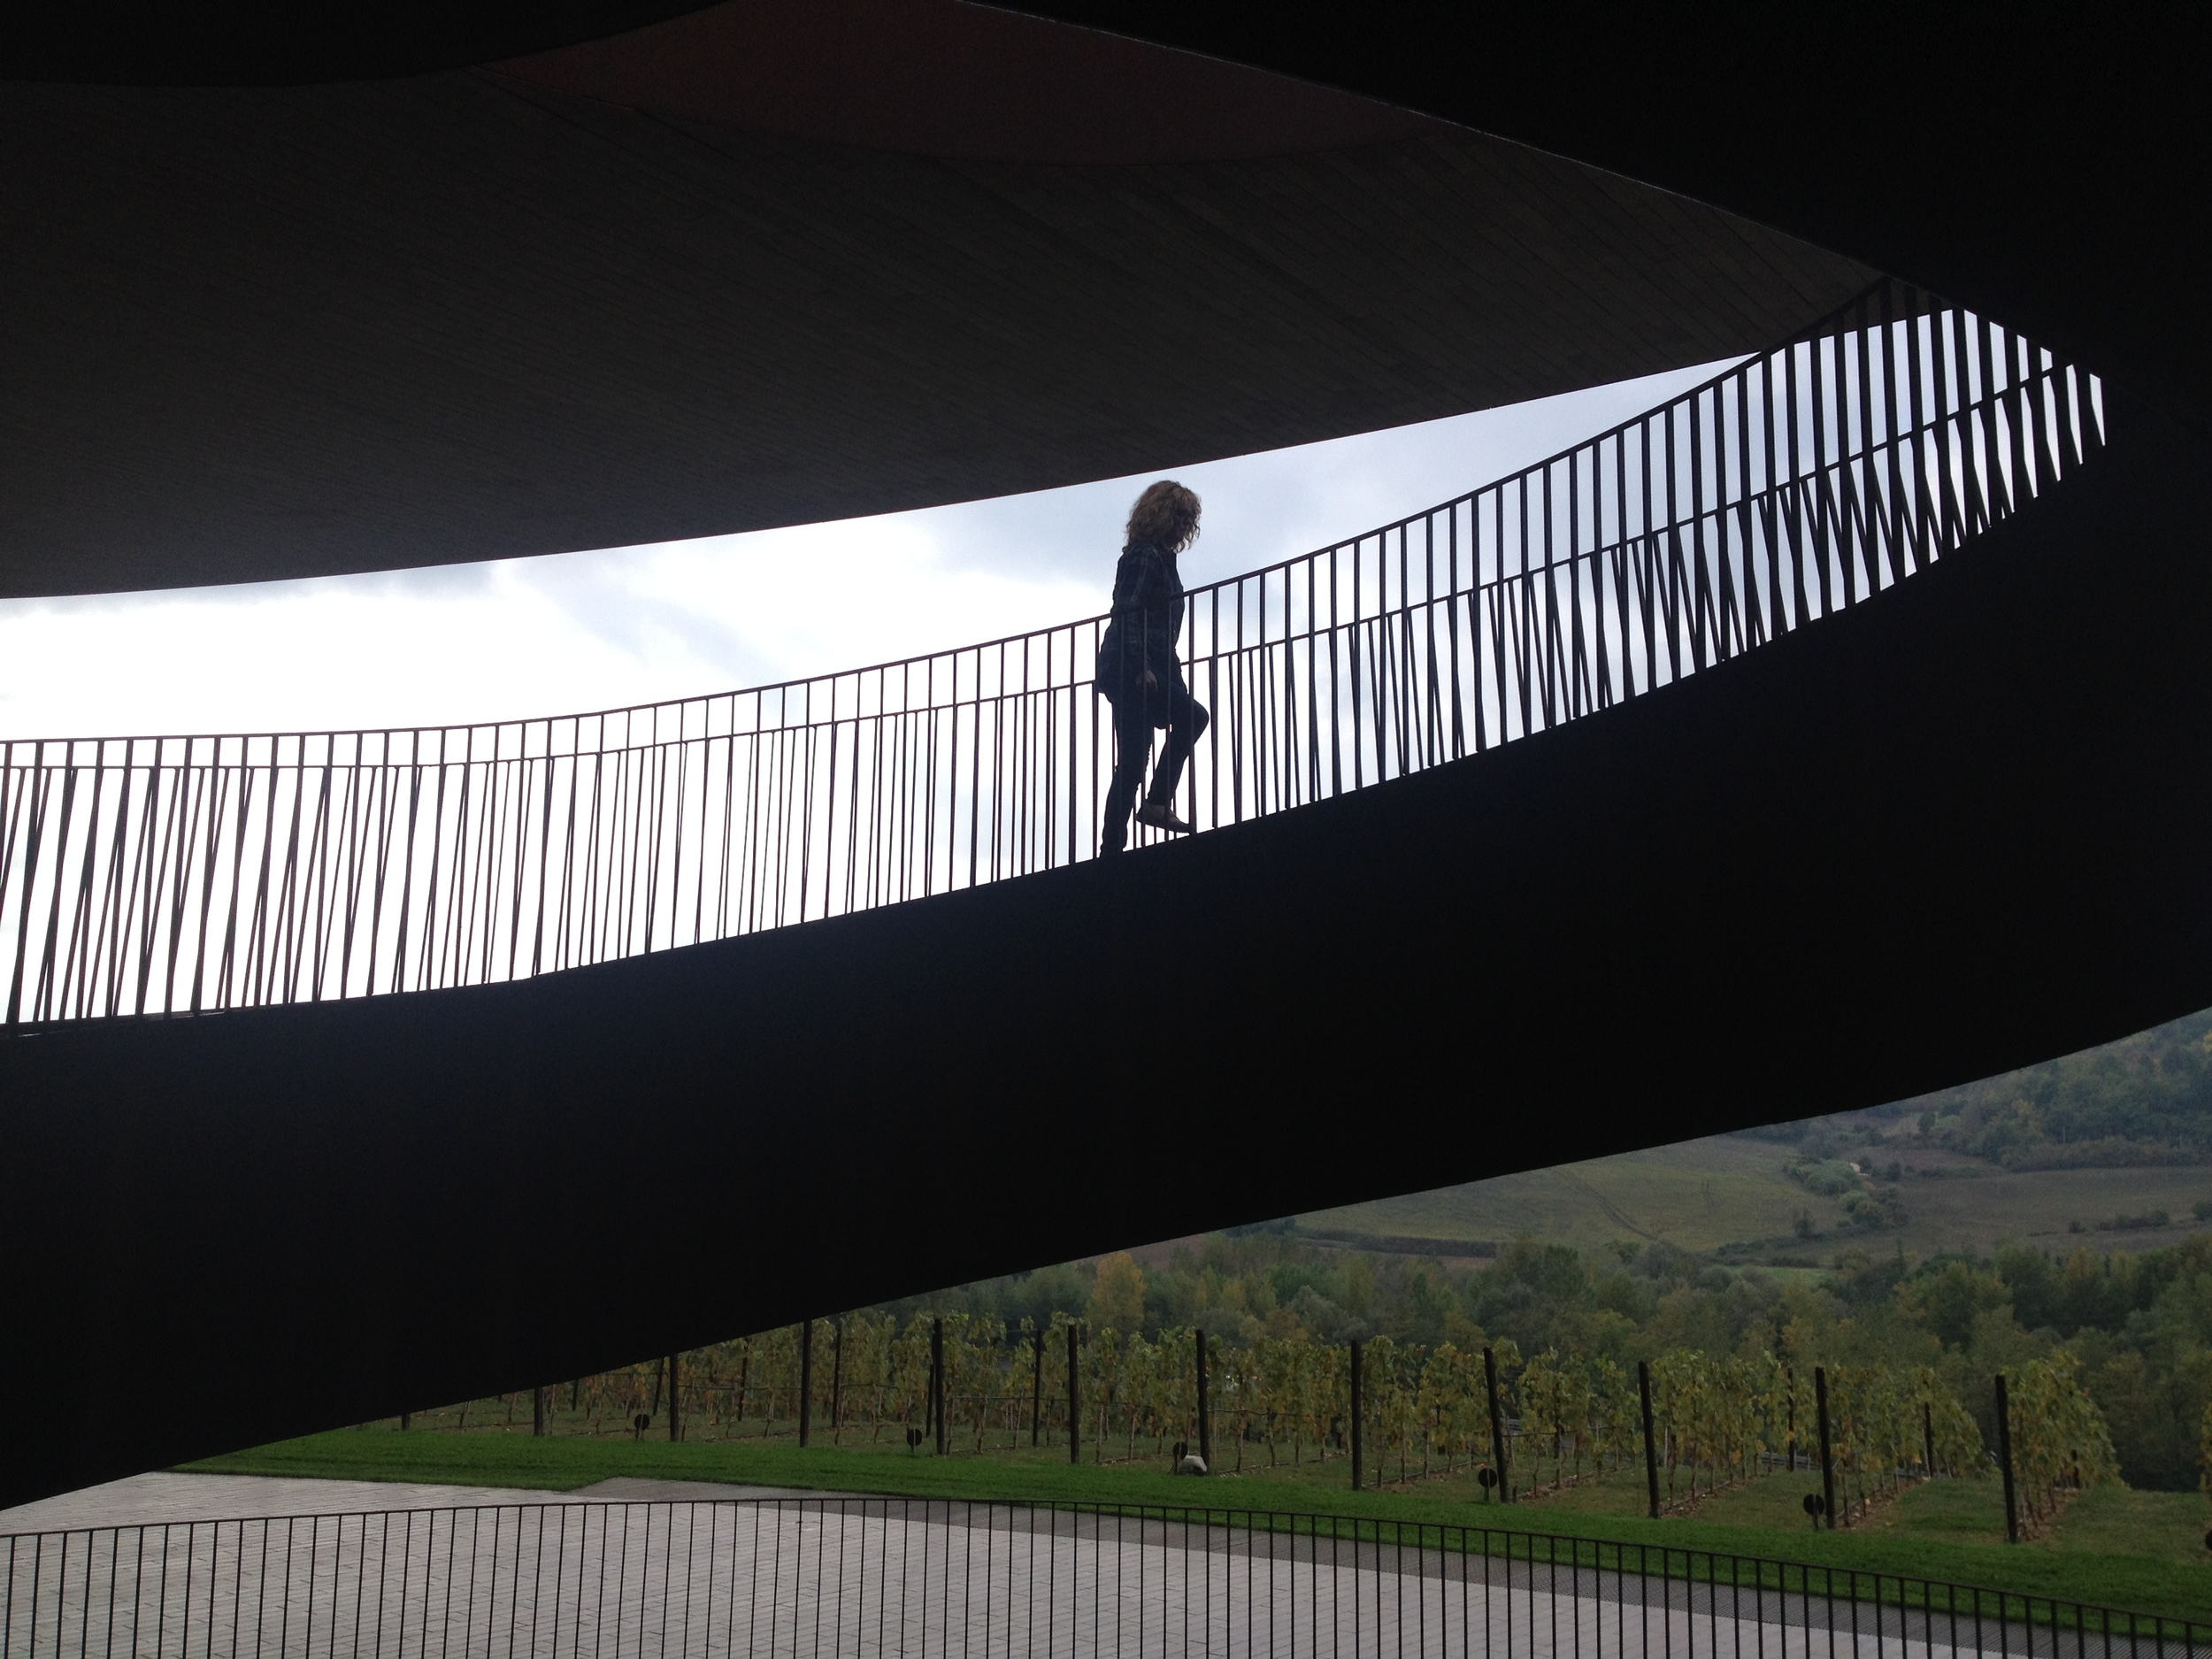 """Lynne ascends the sculptural for-ten steel stairway at Antinori. """"It was a magical place especially with the foggy drizzle that made me feel like I was in a dream as we looked over the luscious hills of Chianti. The wine pairing lunch was very special and the tour was just right."""""""